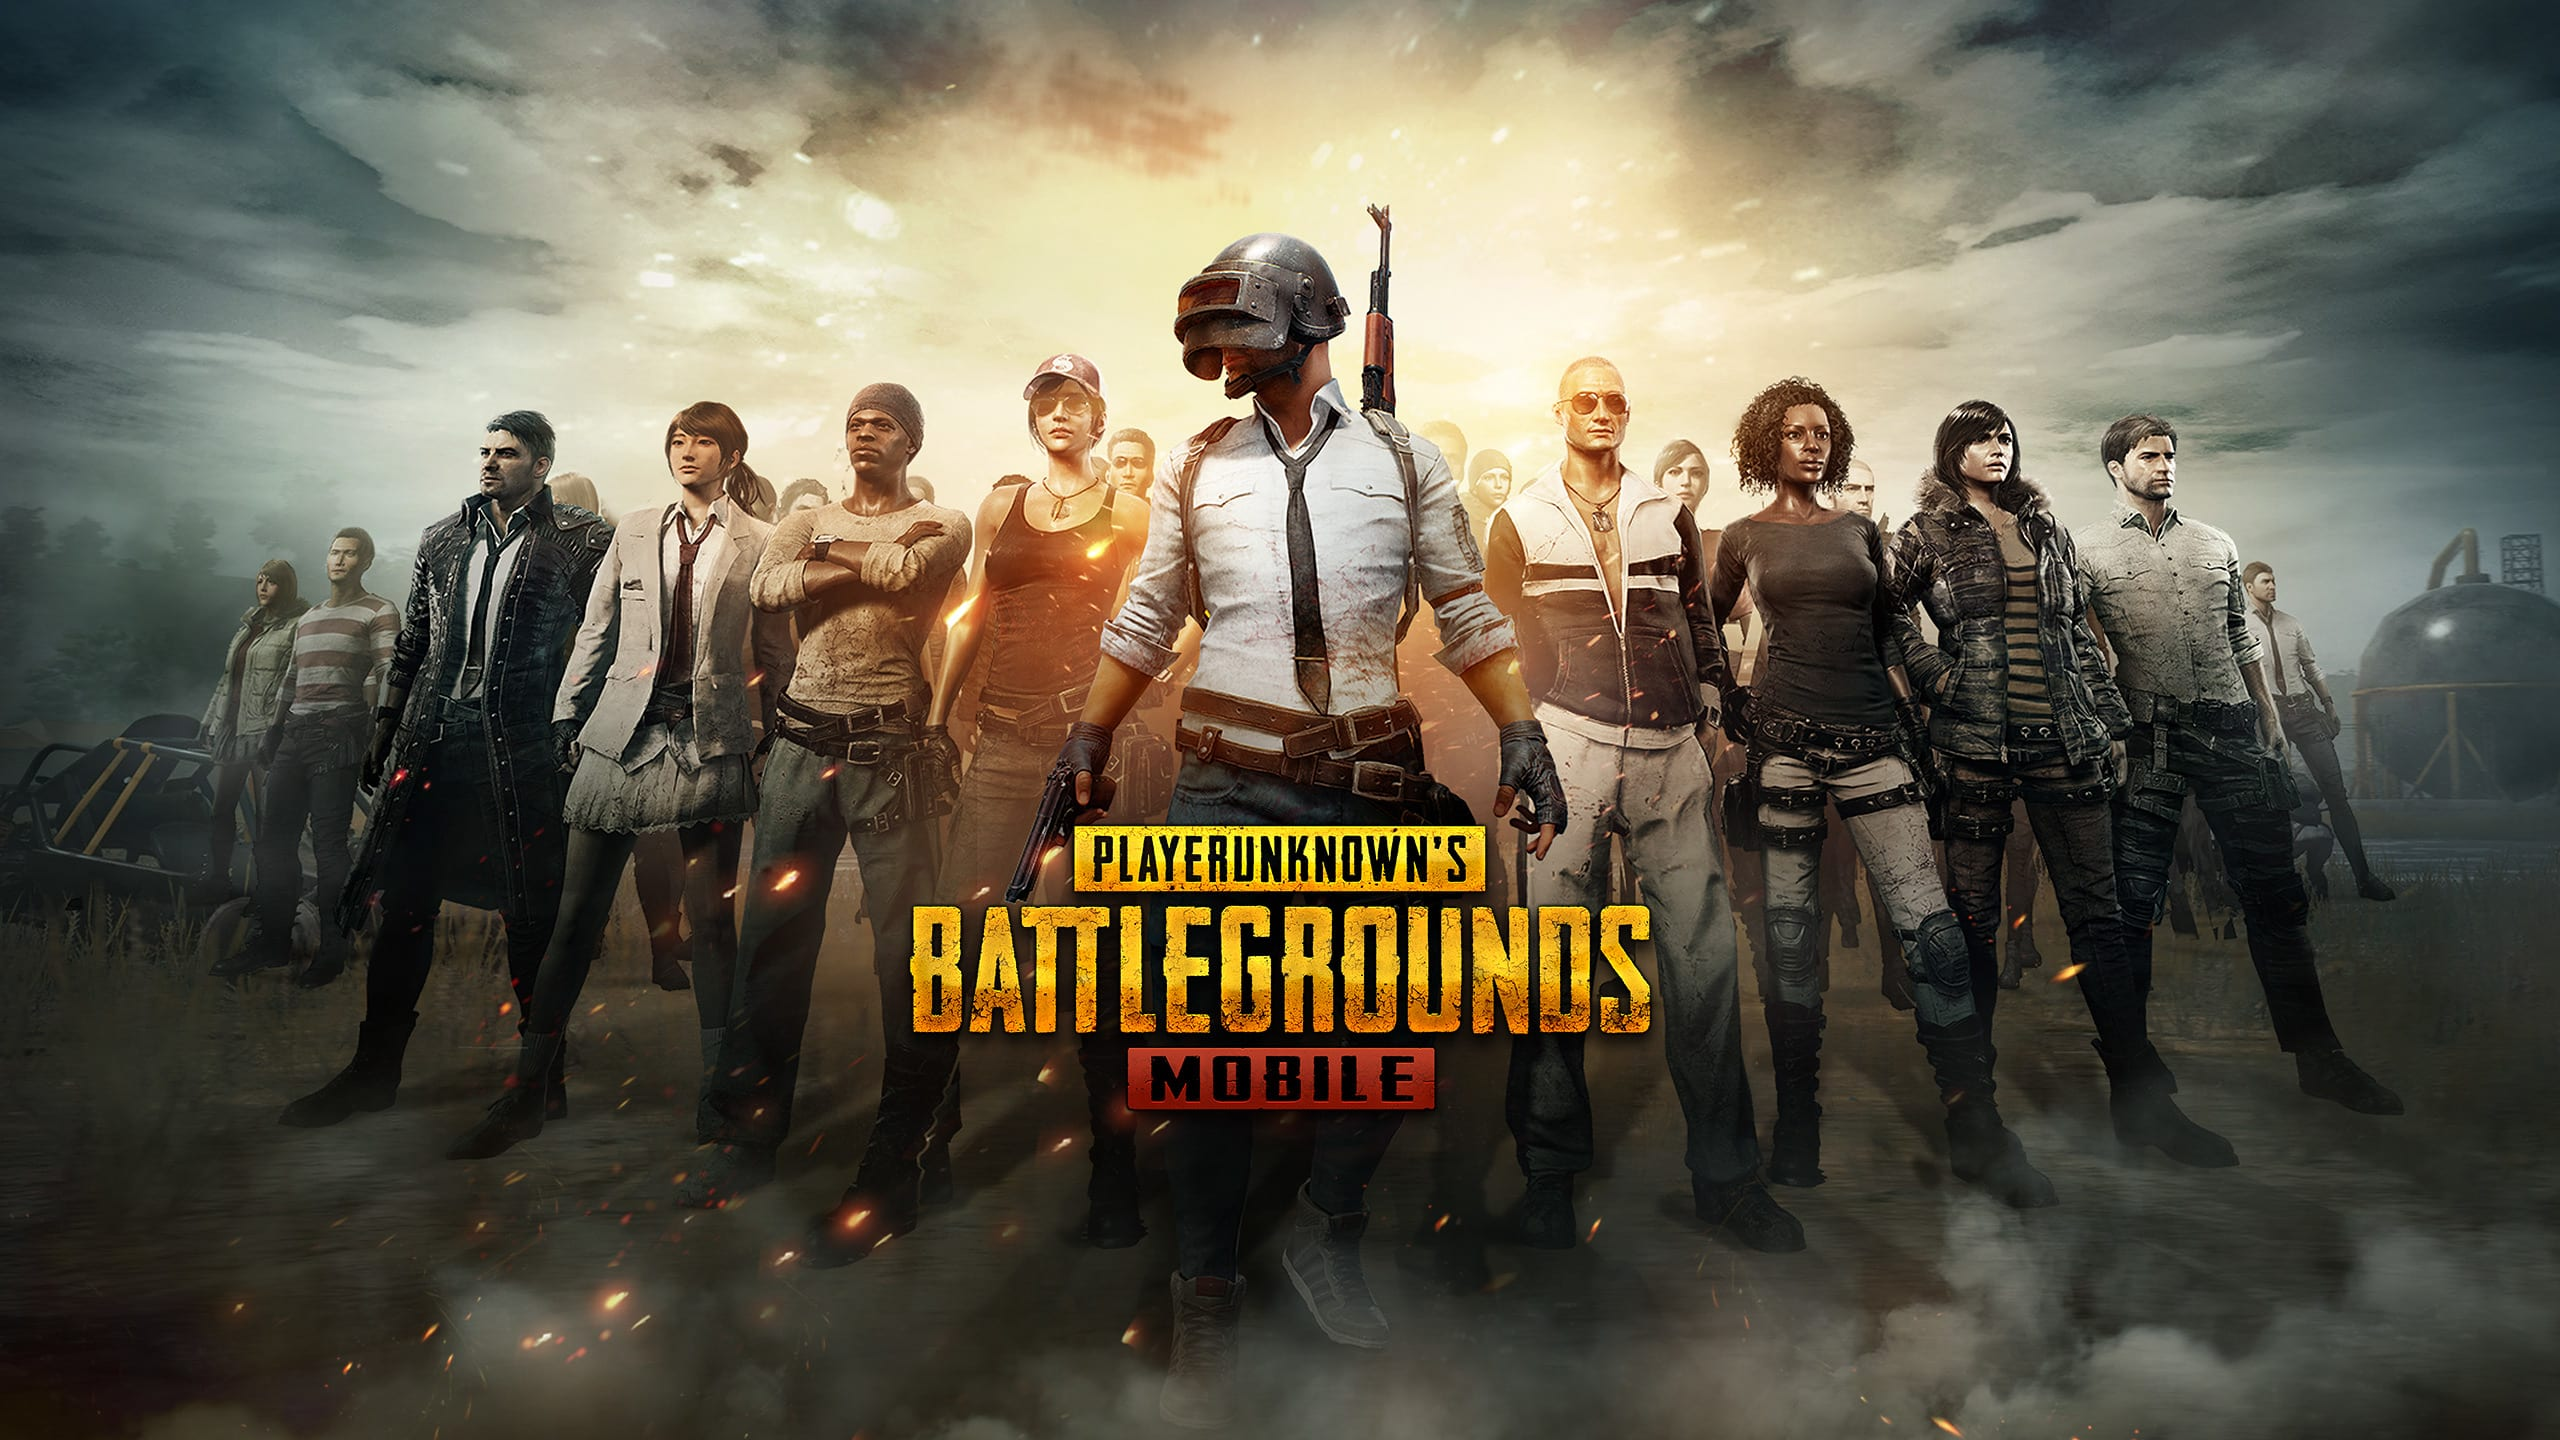 17 Year Old spends his Parents' life savings on PUBG Mobile! 2